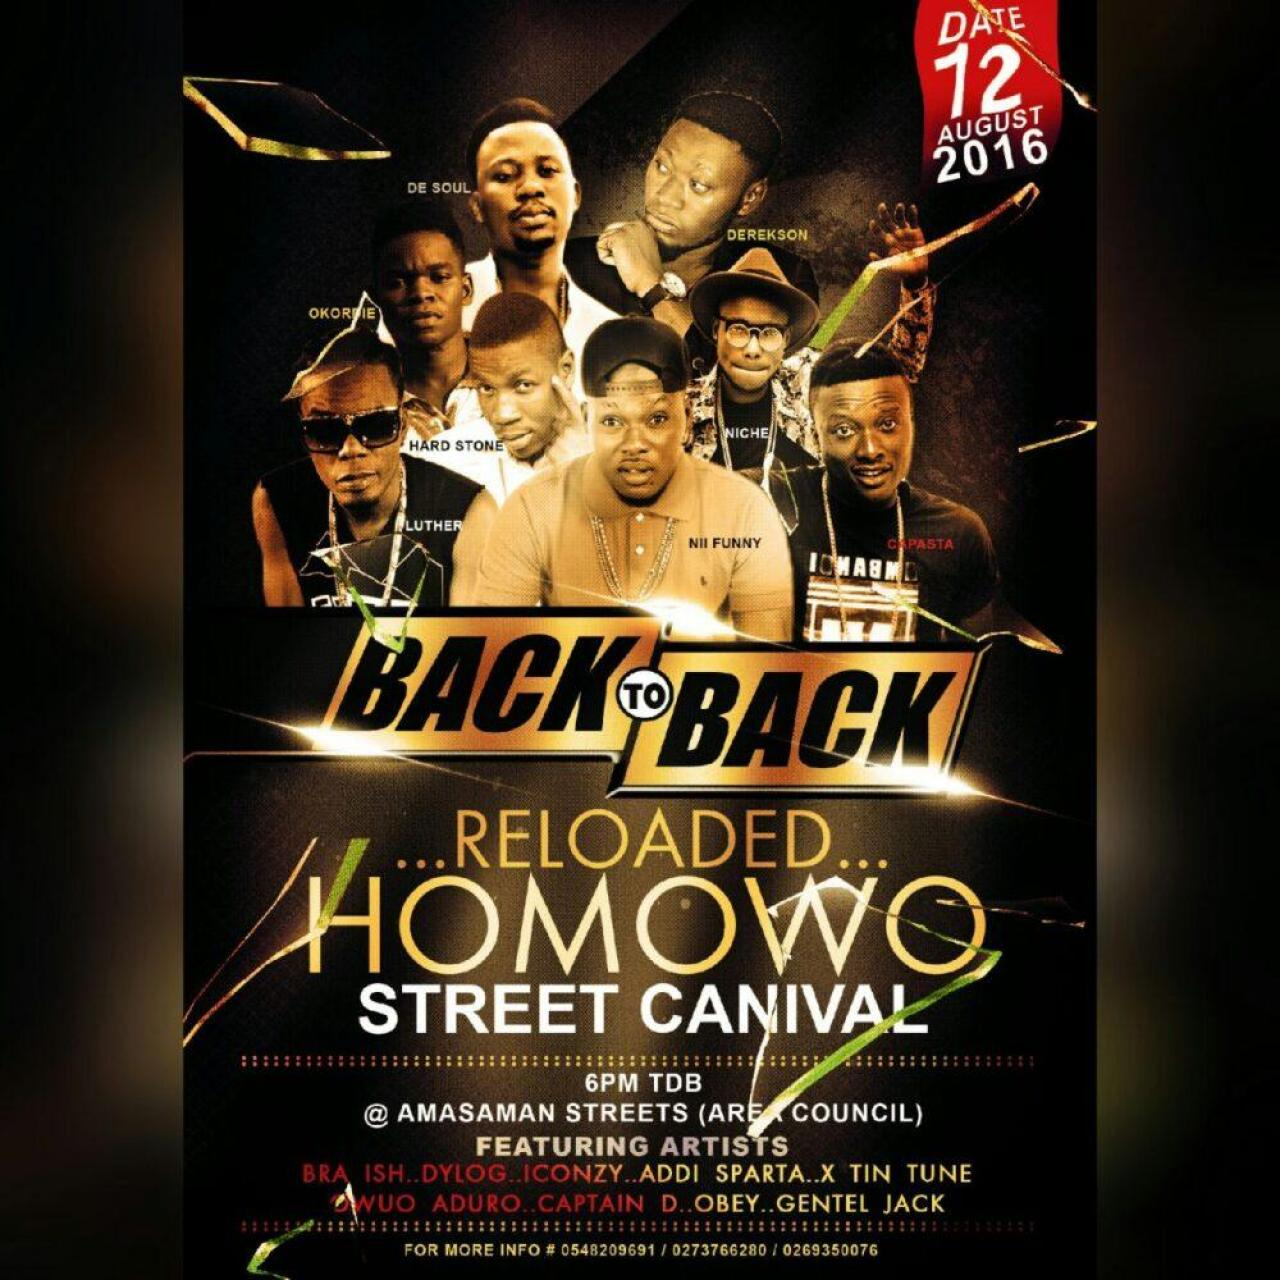 EVENT UPDATE: BACK TO BACK -RELOADED HOMOWO STREET CARNIVAL